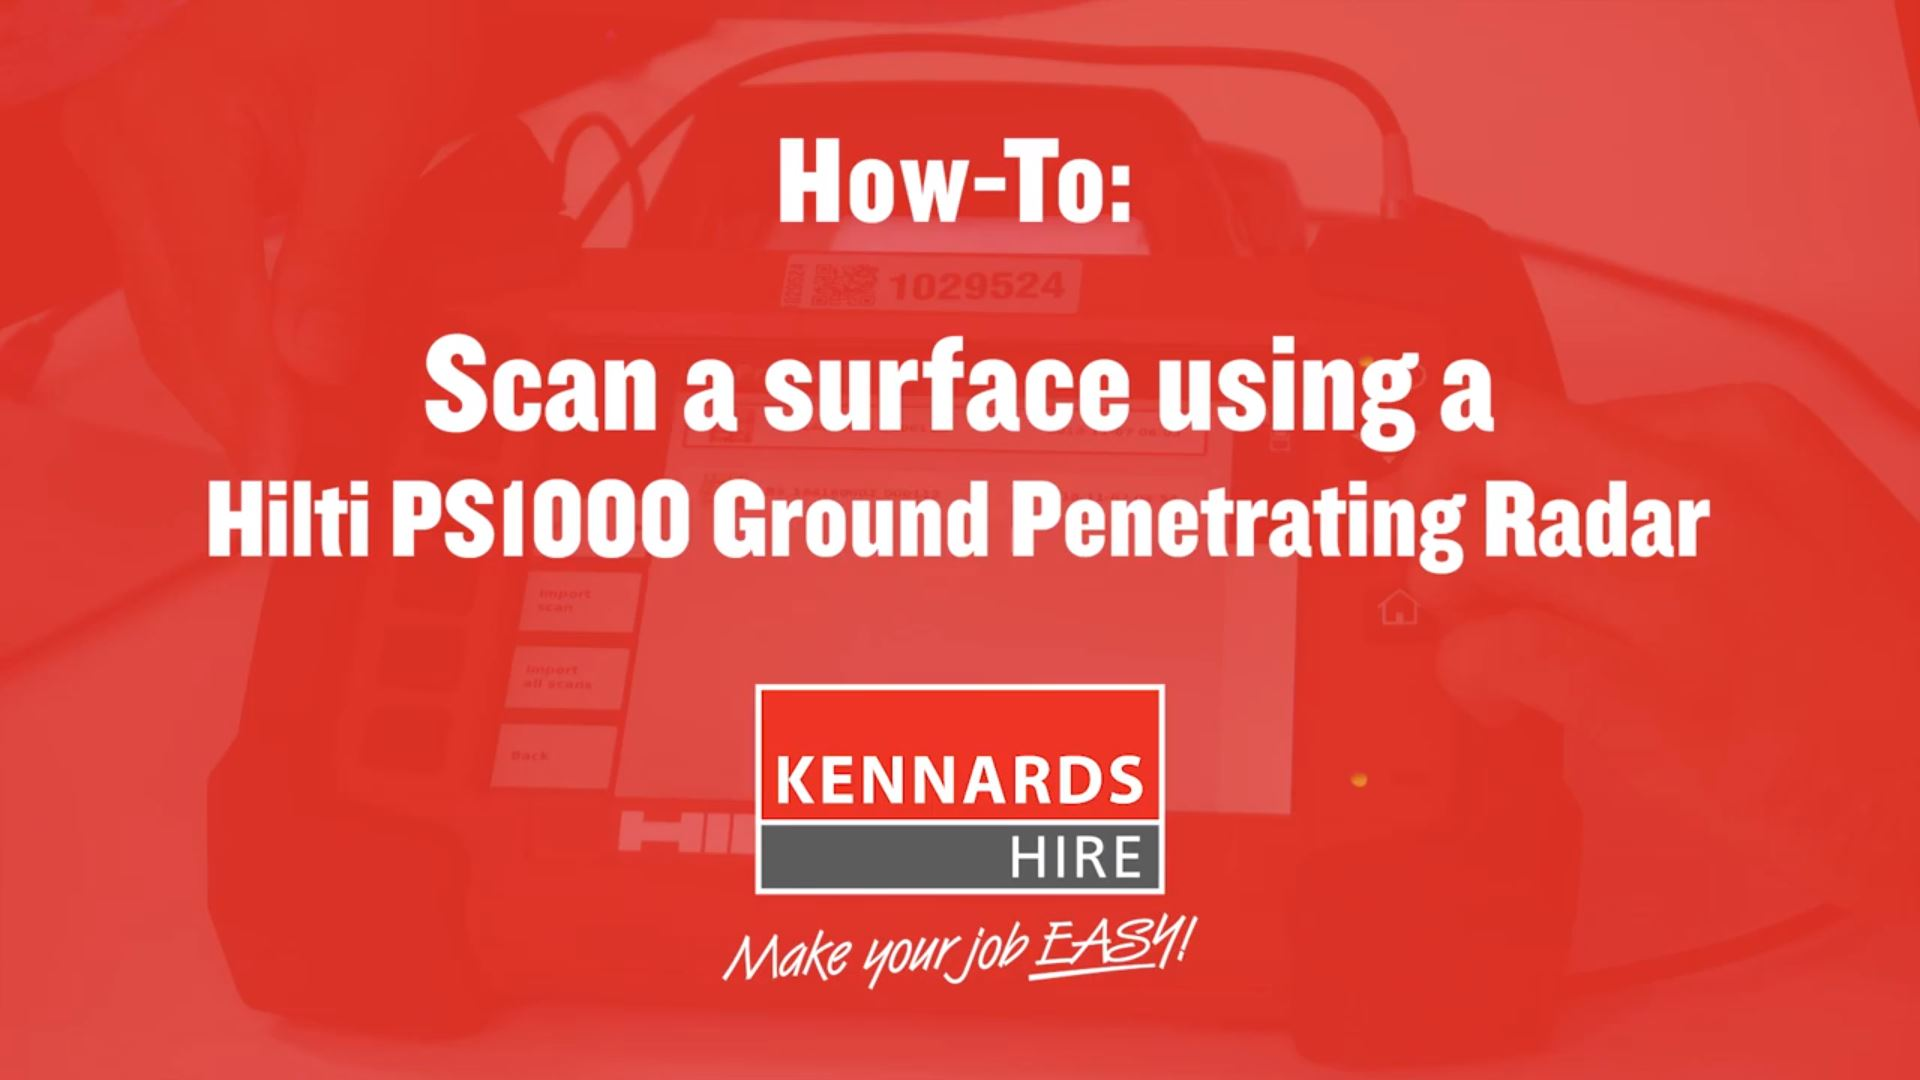 How to Use the Hilti PS1000 Ground Penetrating Radar